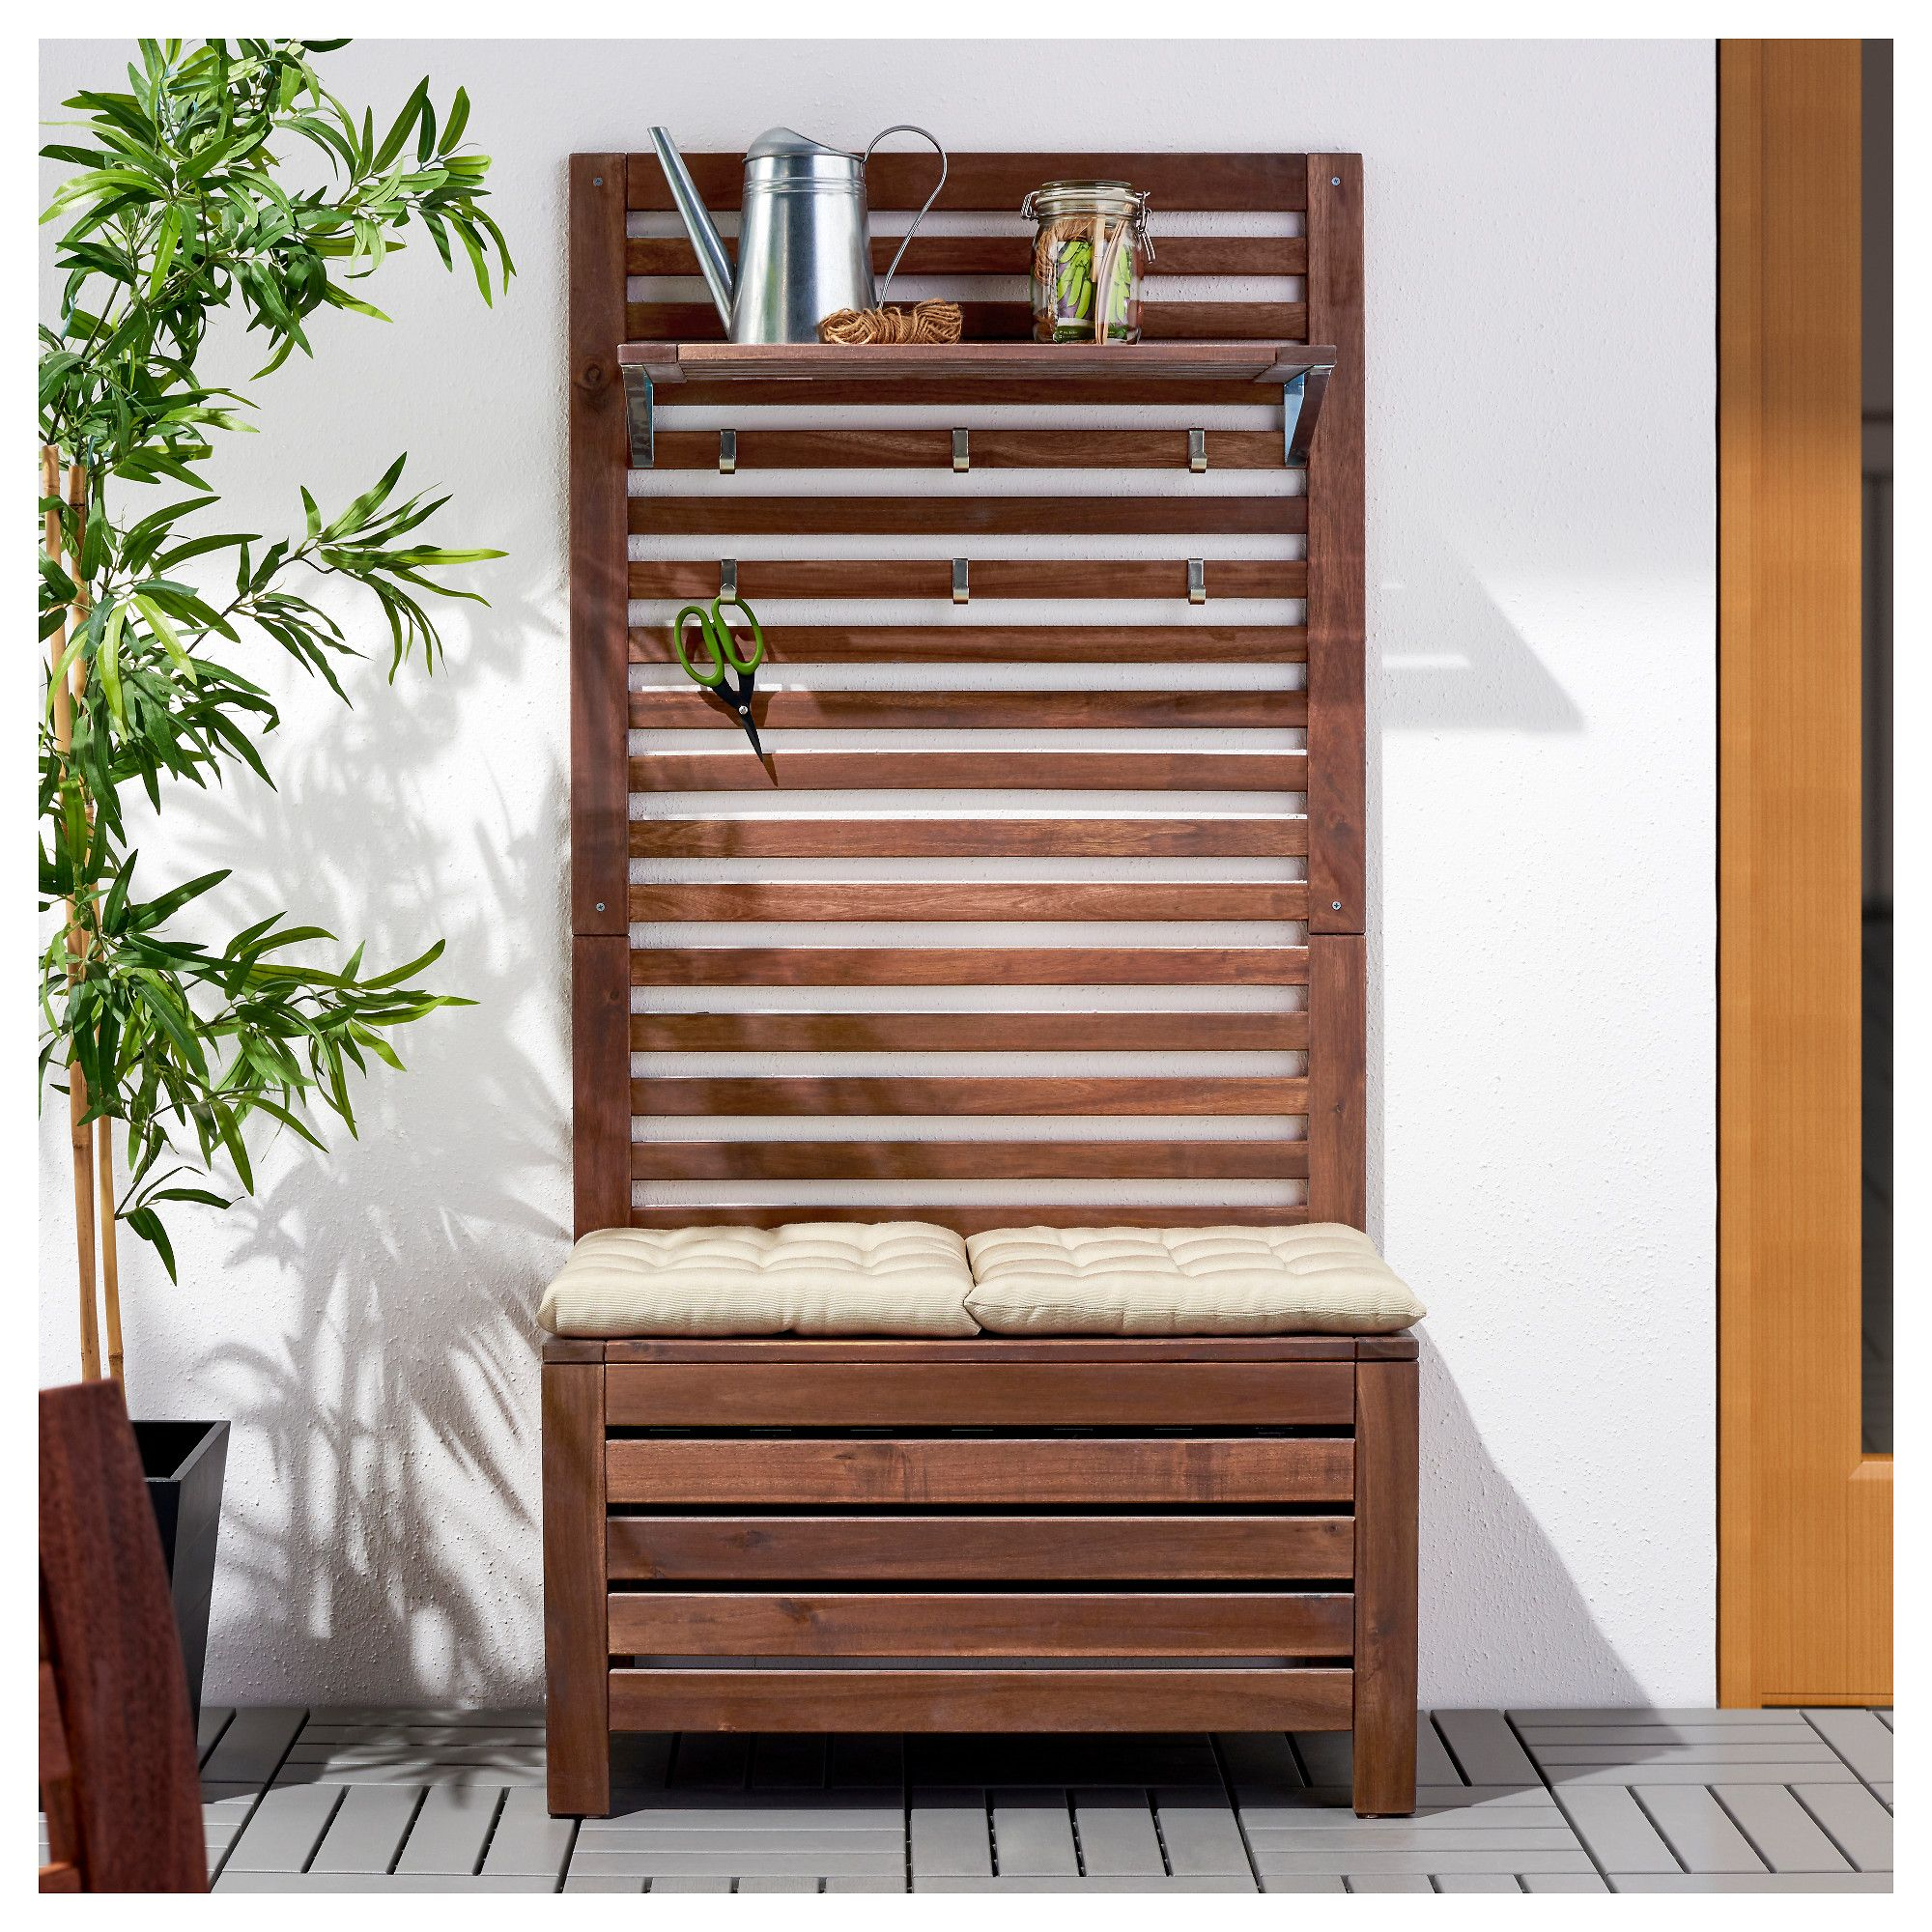 Salon De Jardin Bois Ikea Ikea ÄpplarÖ Bench W Wall Panel Shelf Outdoor Brown Stained